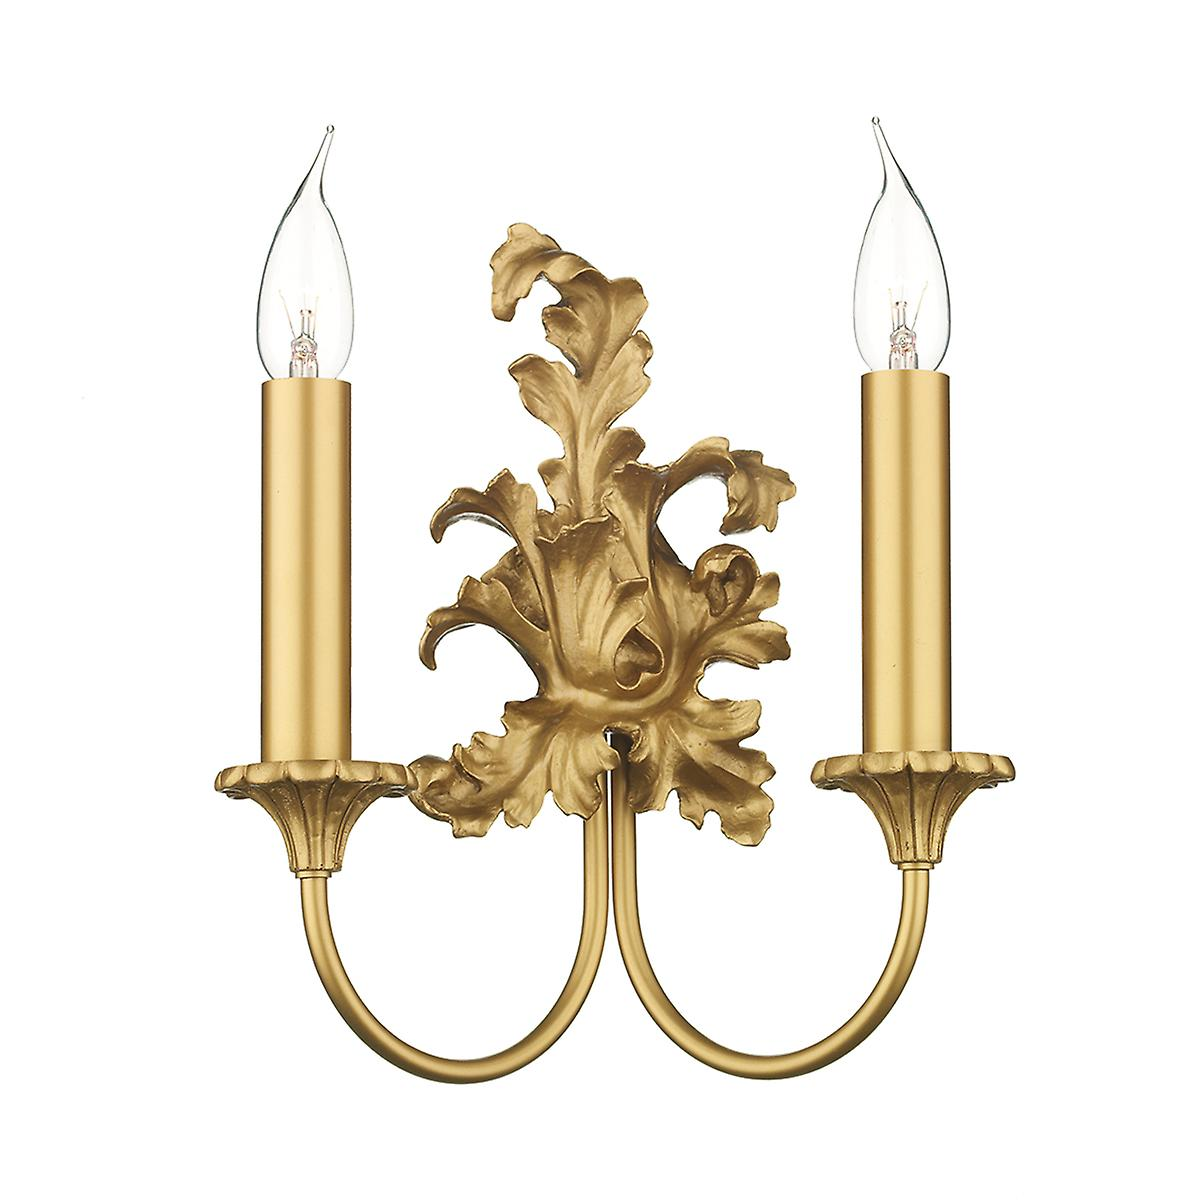 David Hunt SC22 Ormolu Traditional Double Wall Bracket In Gold